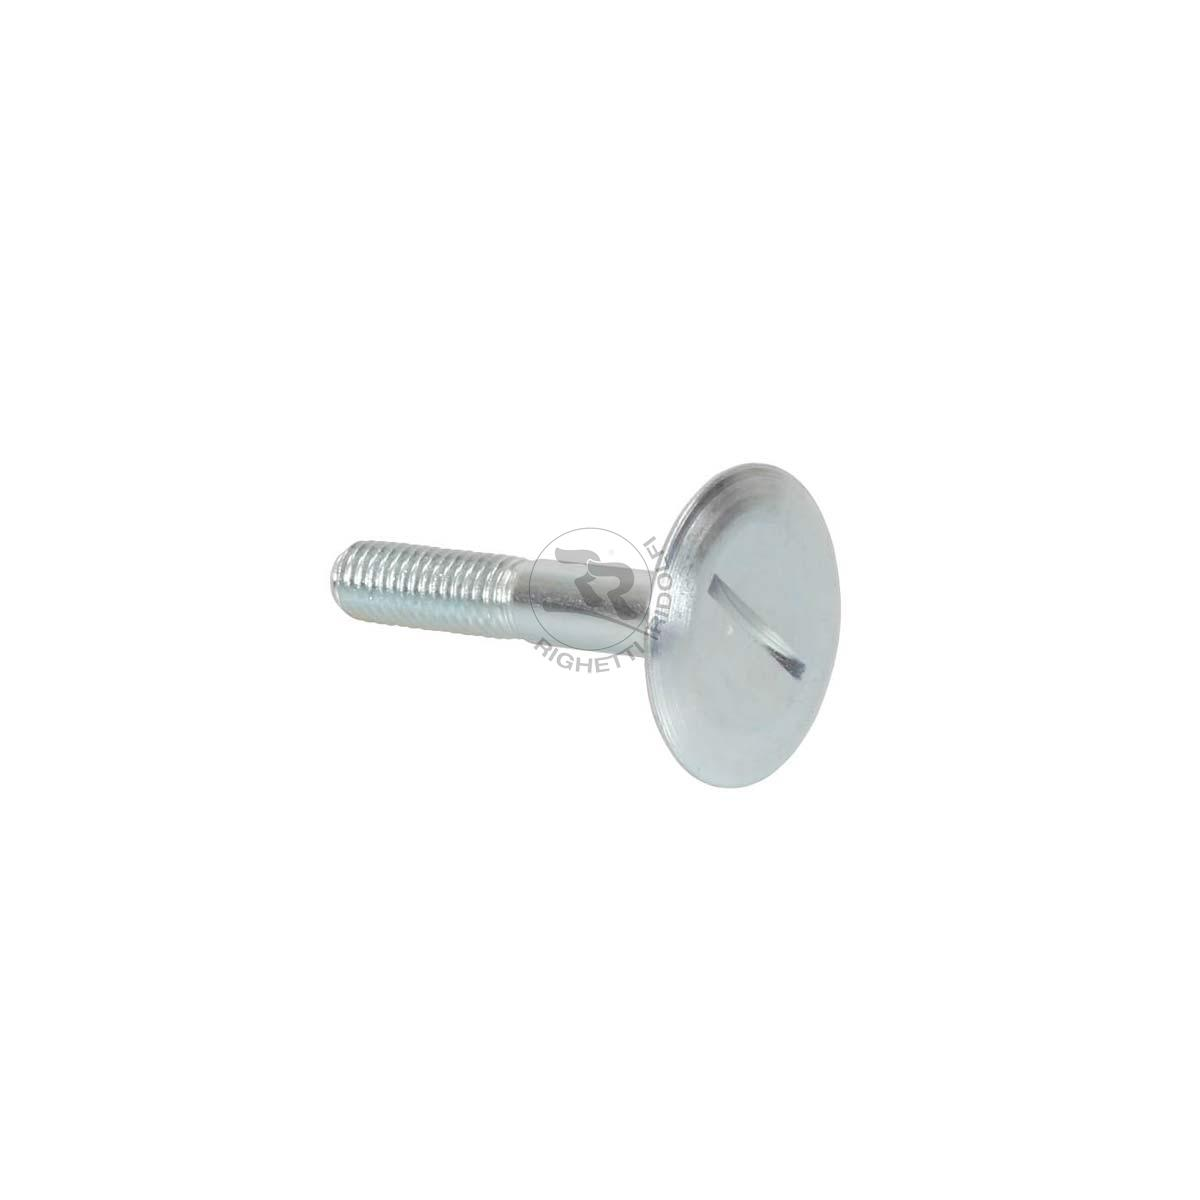 Super Flat Seat Bolt 8x45mm